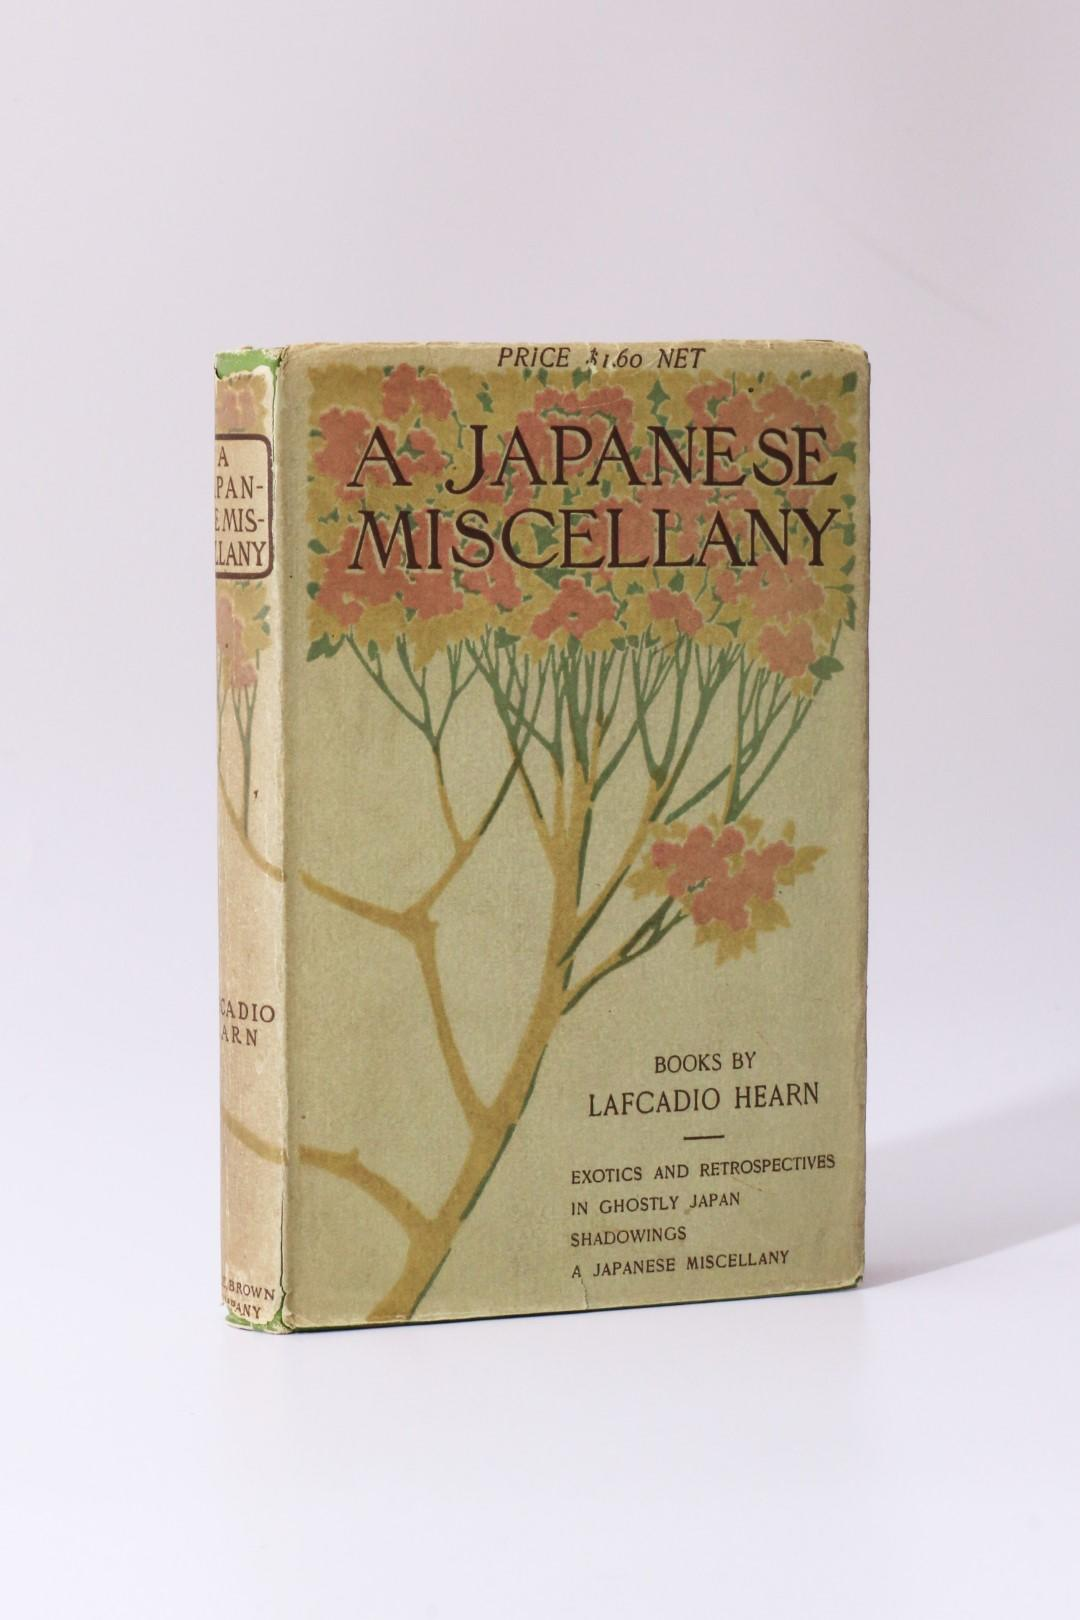 Lafcadio Hearn - A Japanese Miscellany - Little, Brown & Company, 1901, First Edition.